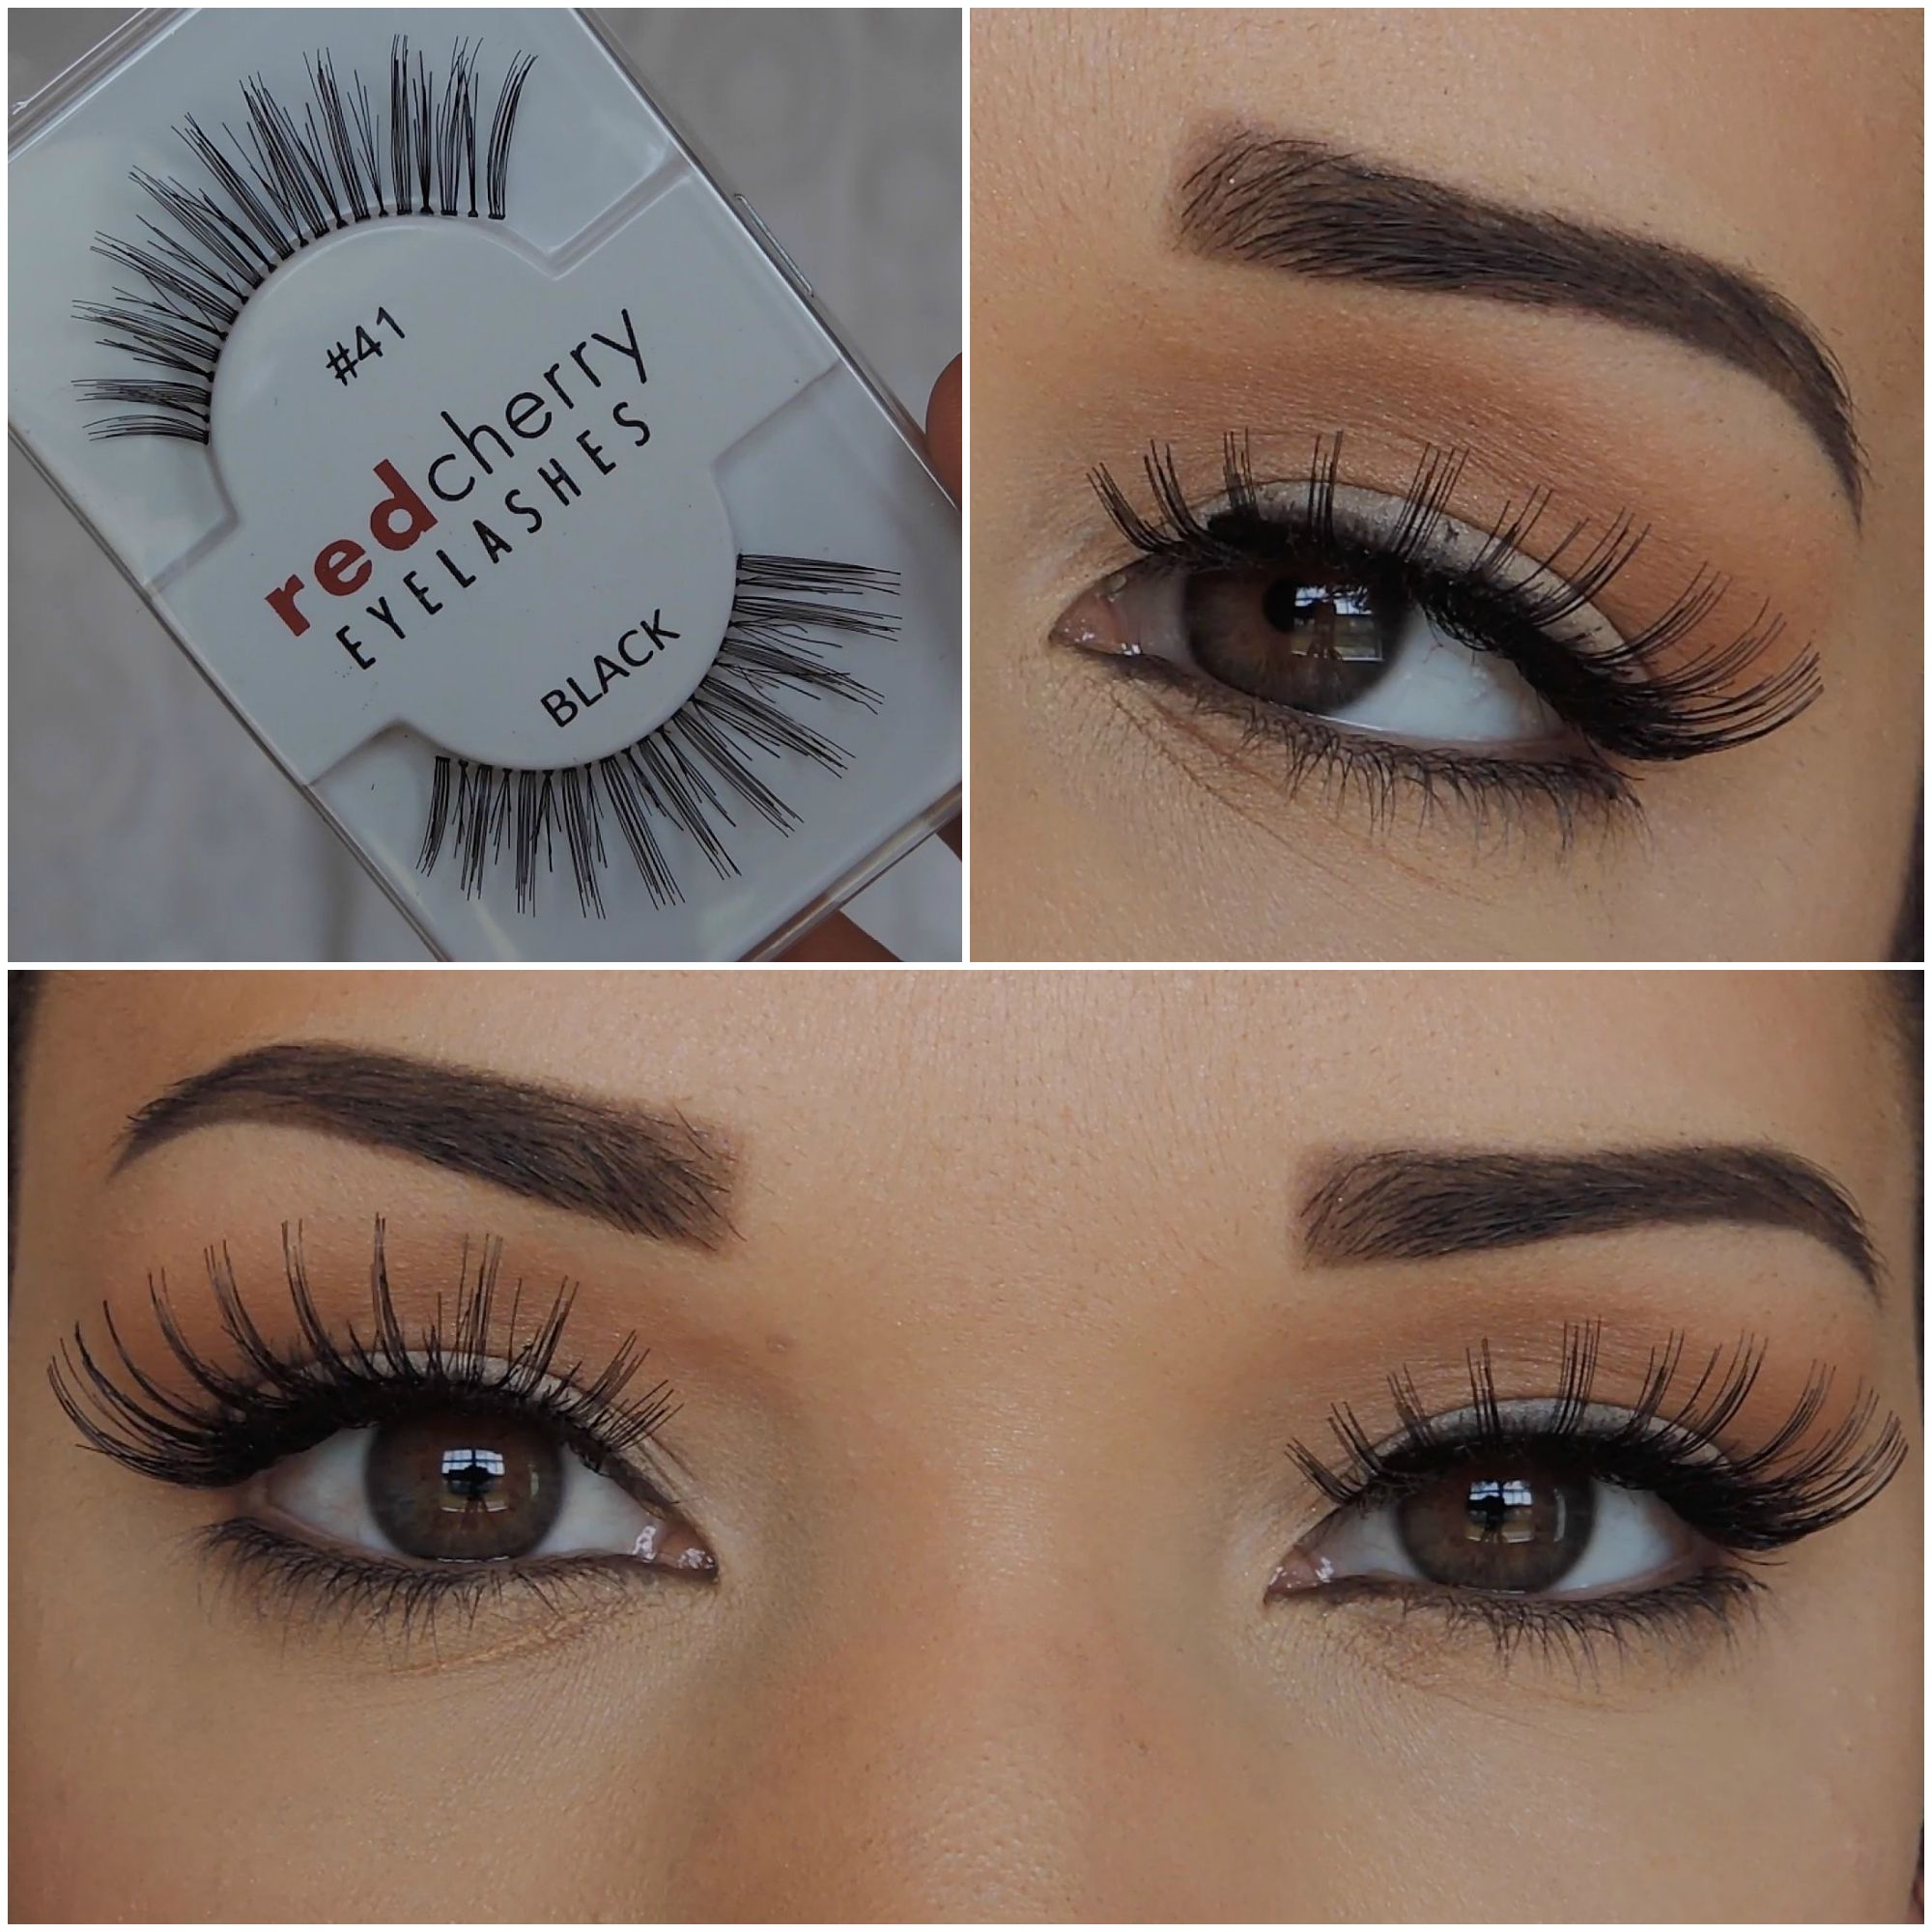 Red Cherry Lashes 41 Sundance Beautybycmw Pinterest Red